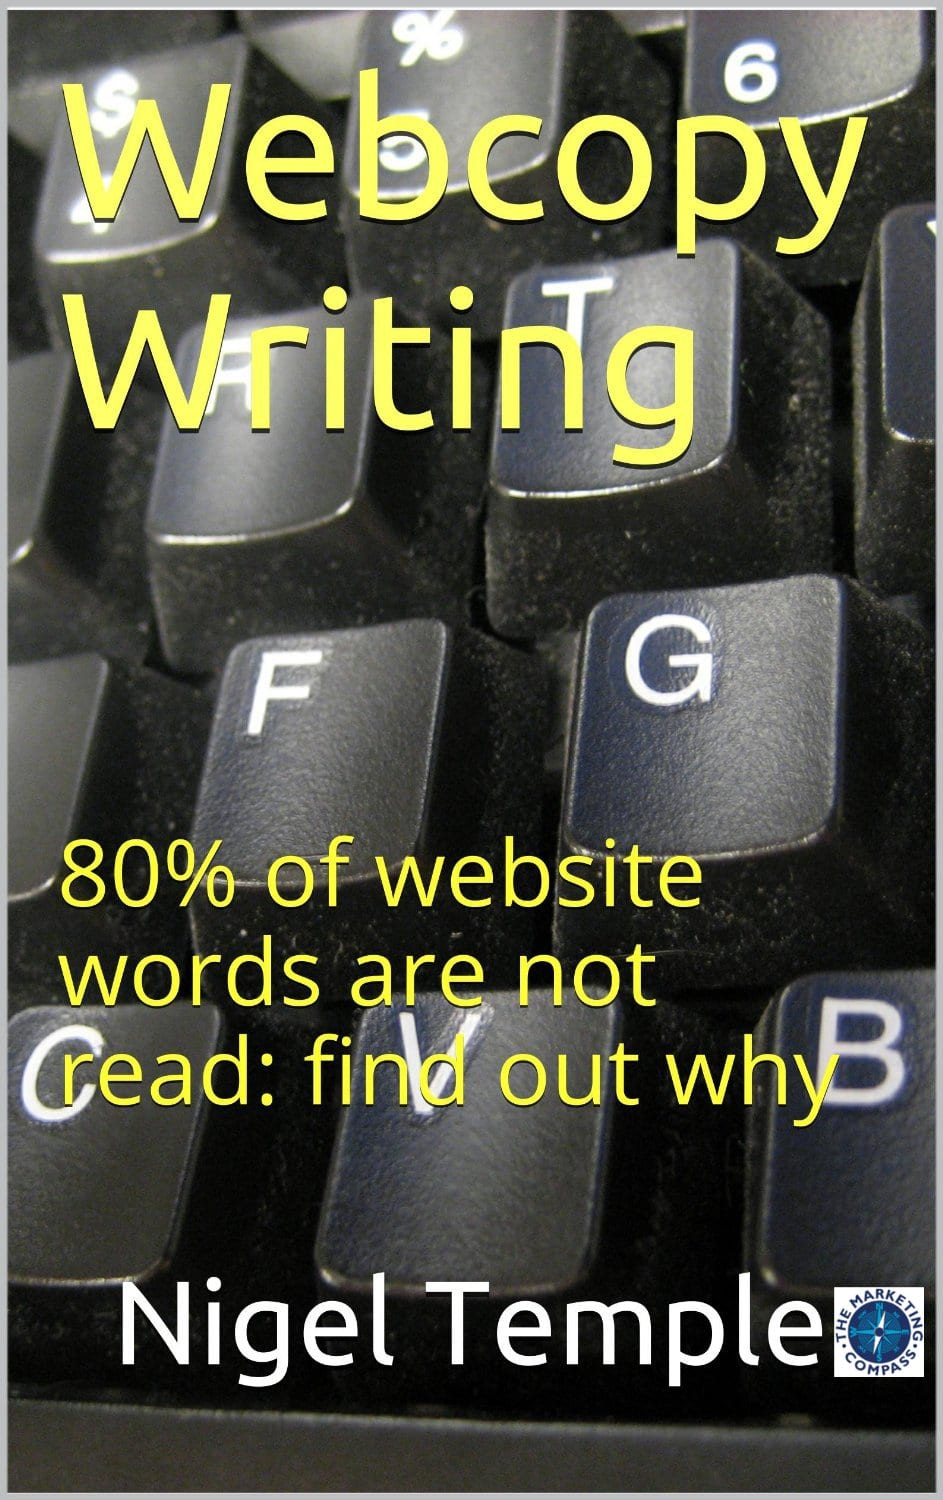 Webcopy Writing by Nigel Temple